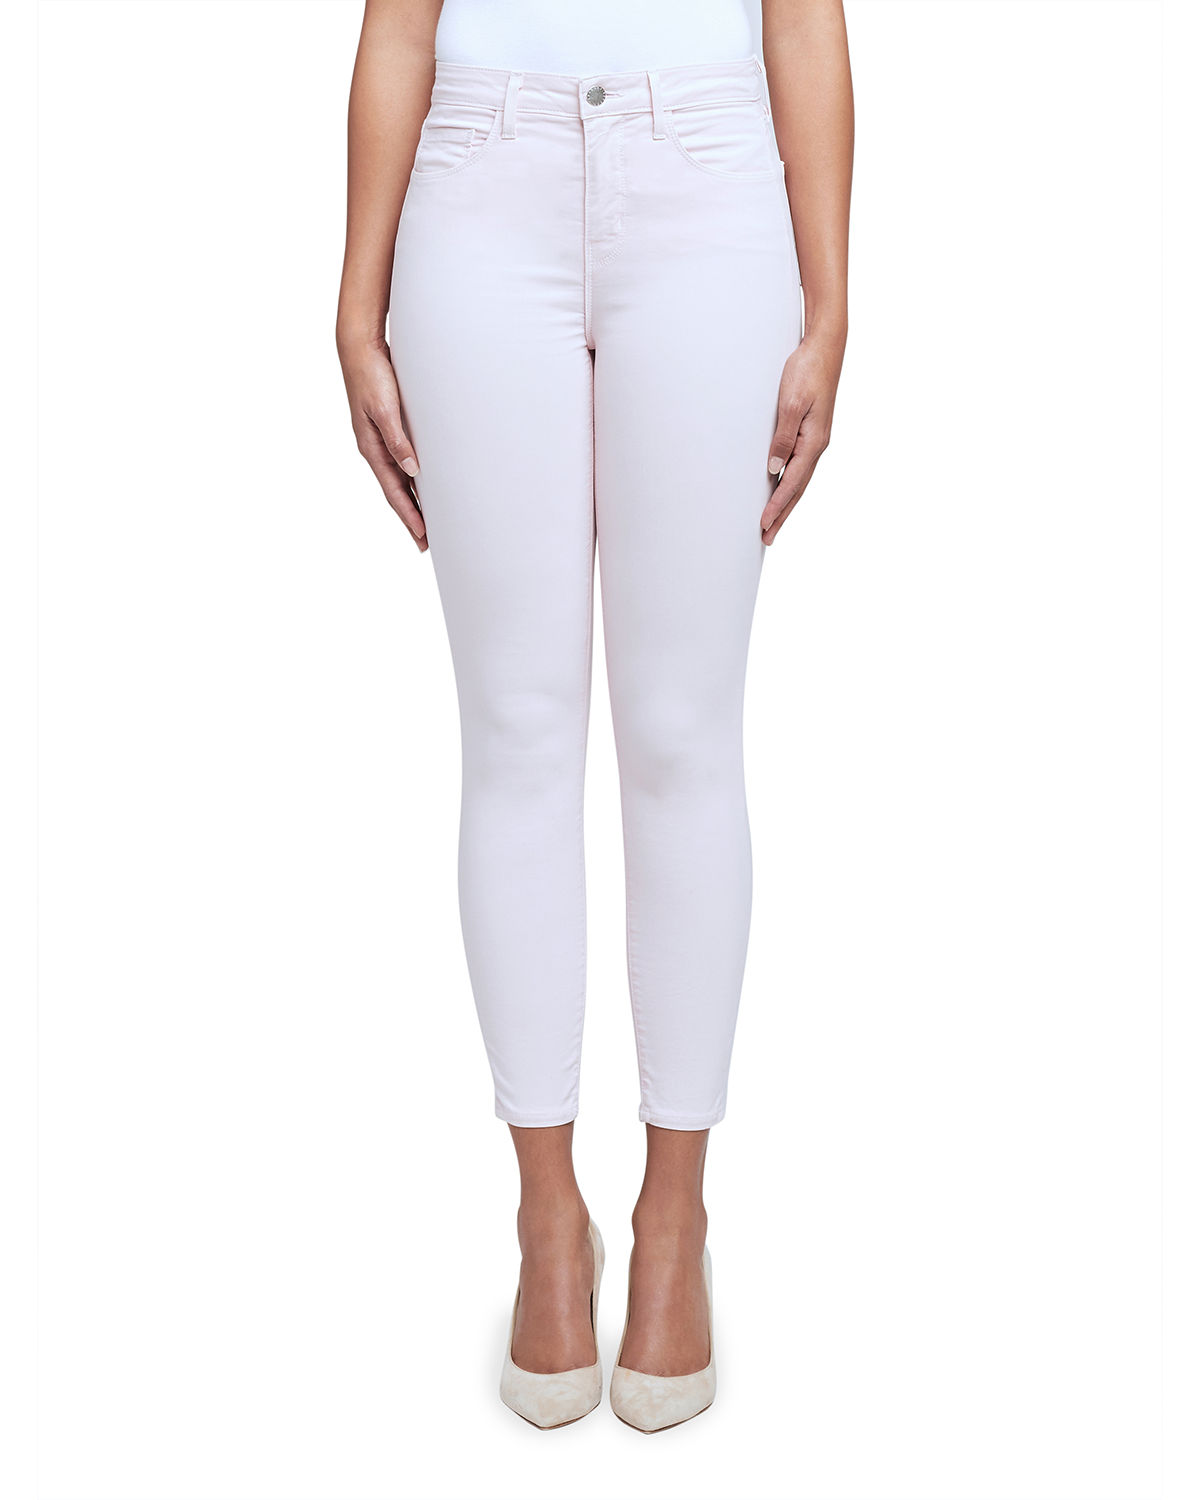 L Agence MARGOT HIGH-RISE SKINNY JEANS